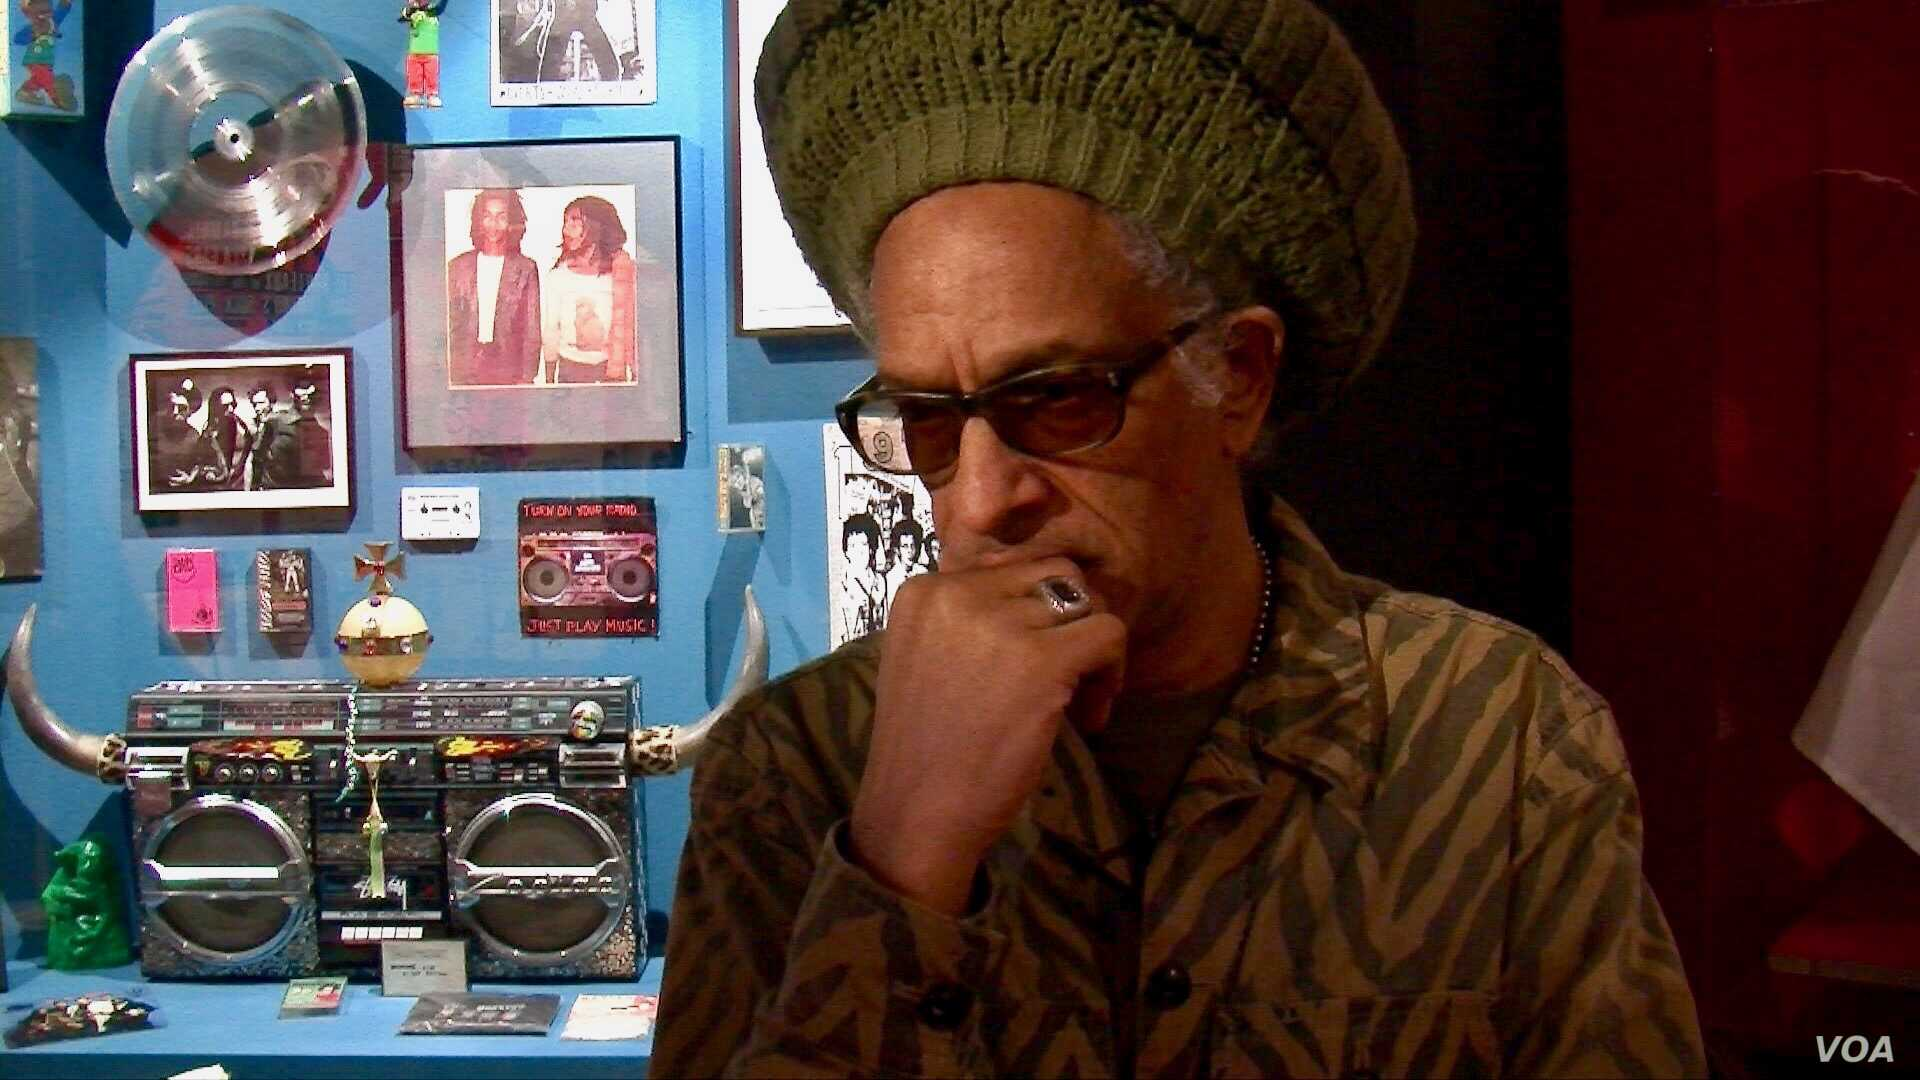 British musician and filmmaker Don Letts says music helped immigrants like his parents integrate in the UK.